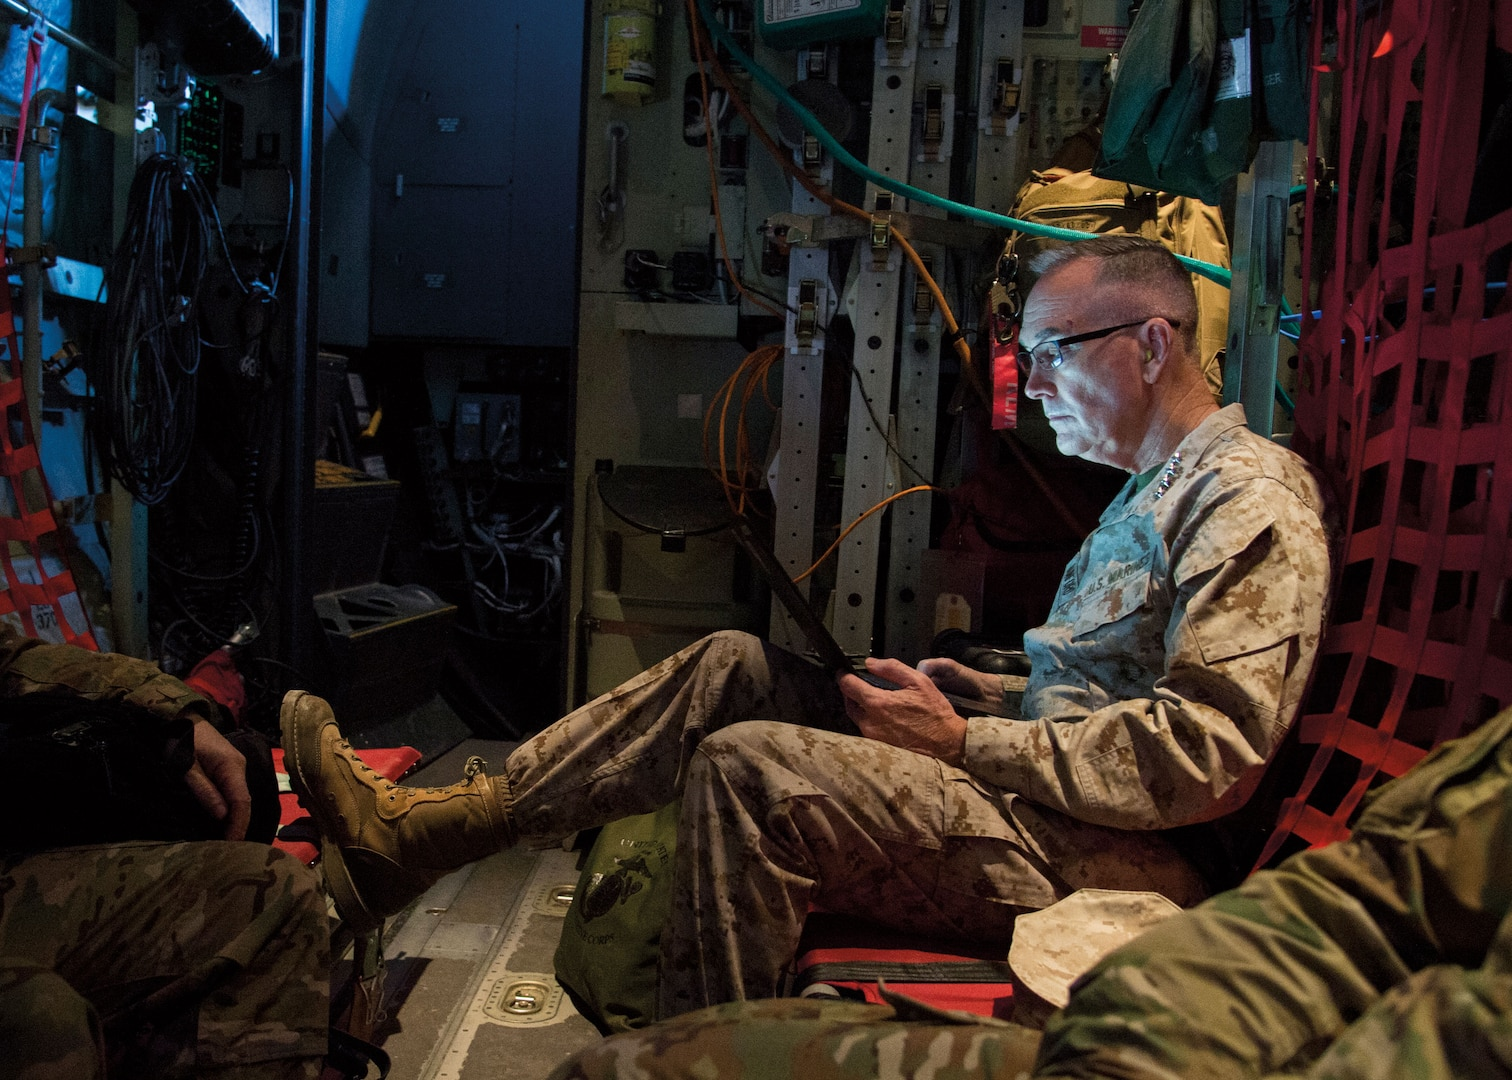 General Dunford works aboard C-130 aircraft at Bagram Airfield before visit to Task Force–Southwest at Camp Shorab, Helmand Province, March 22, 2018 (DOD/Dominique A. Pineiro)